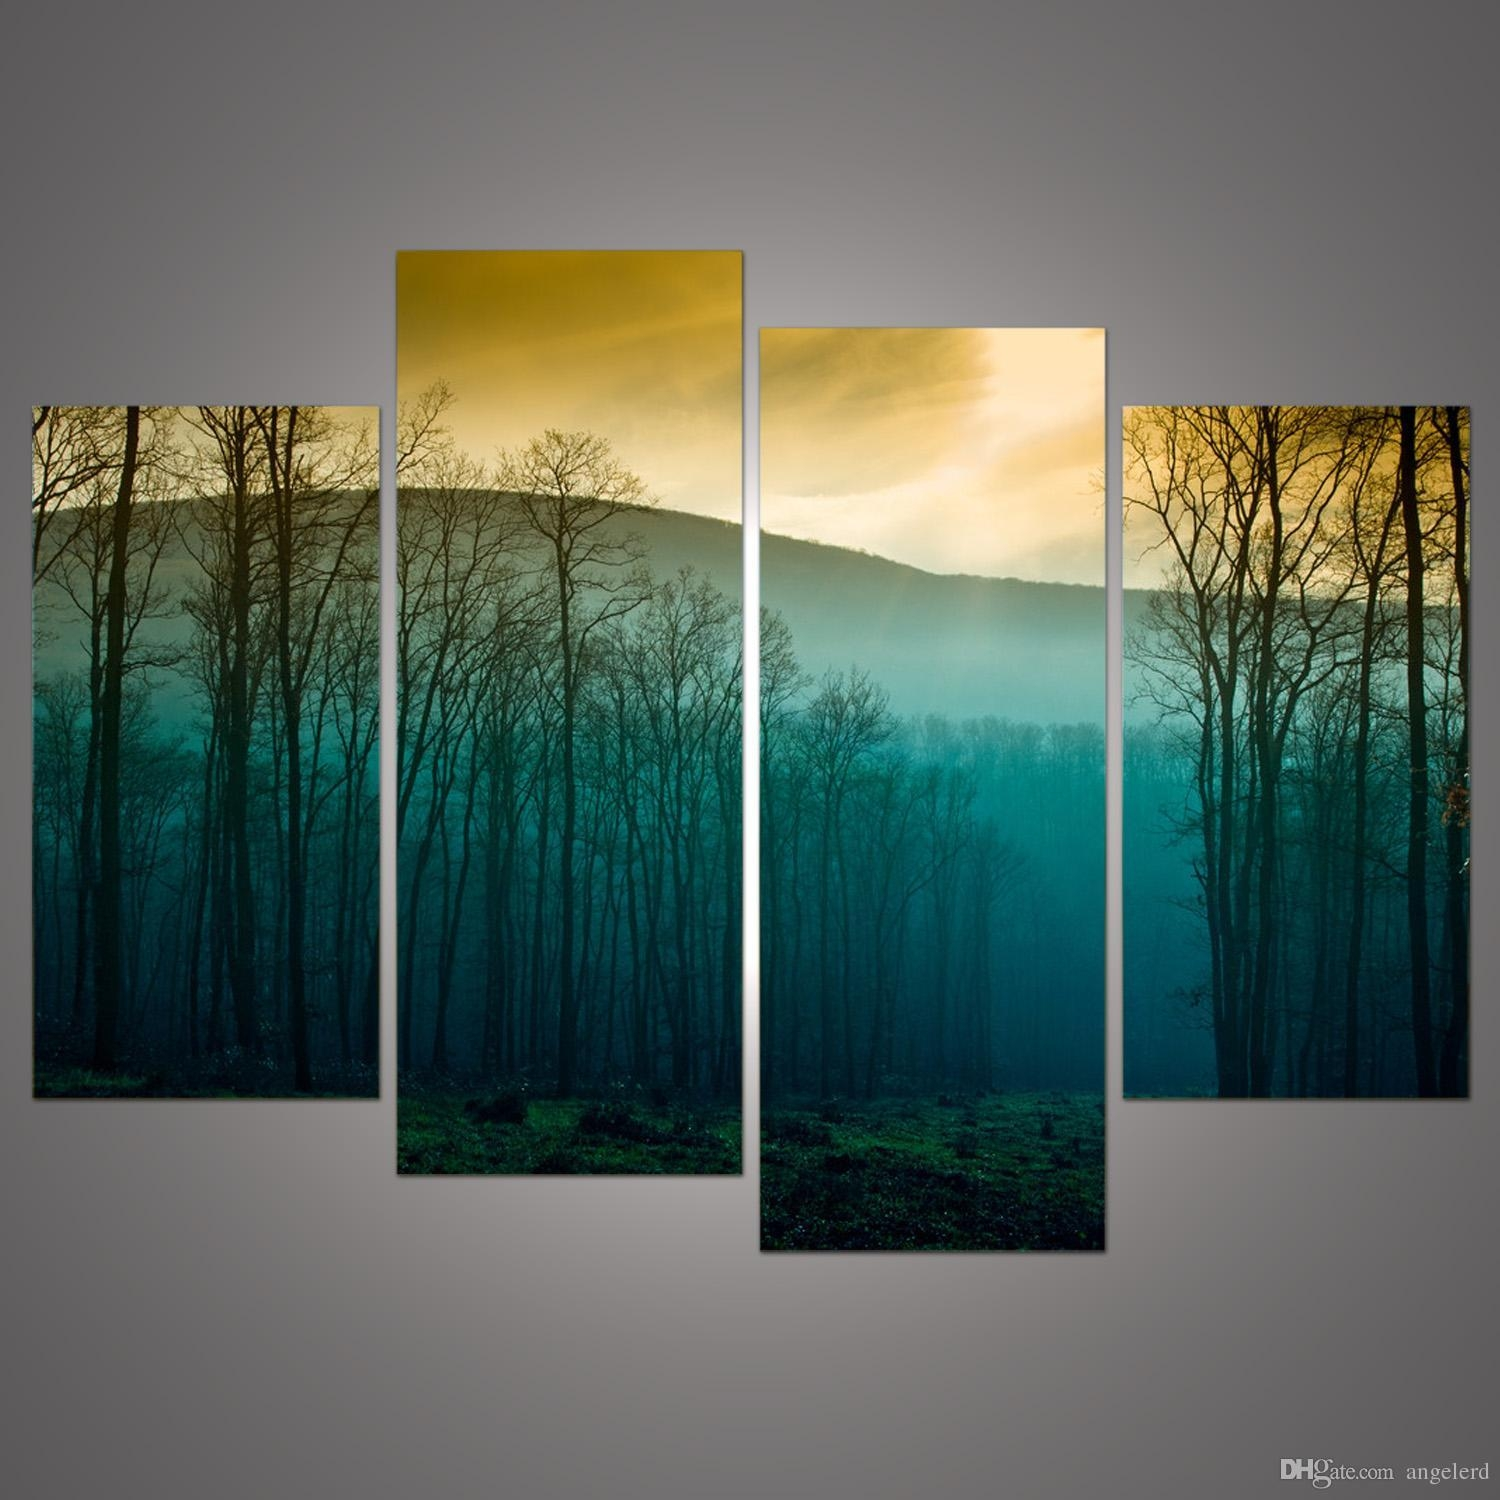 Hot Sale! Modern Abstract Huge Wall Art Painting On Canvas Intended For Huge Wall Art (View 8 of 20)